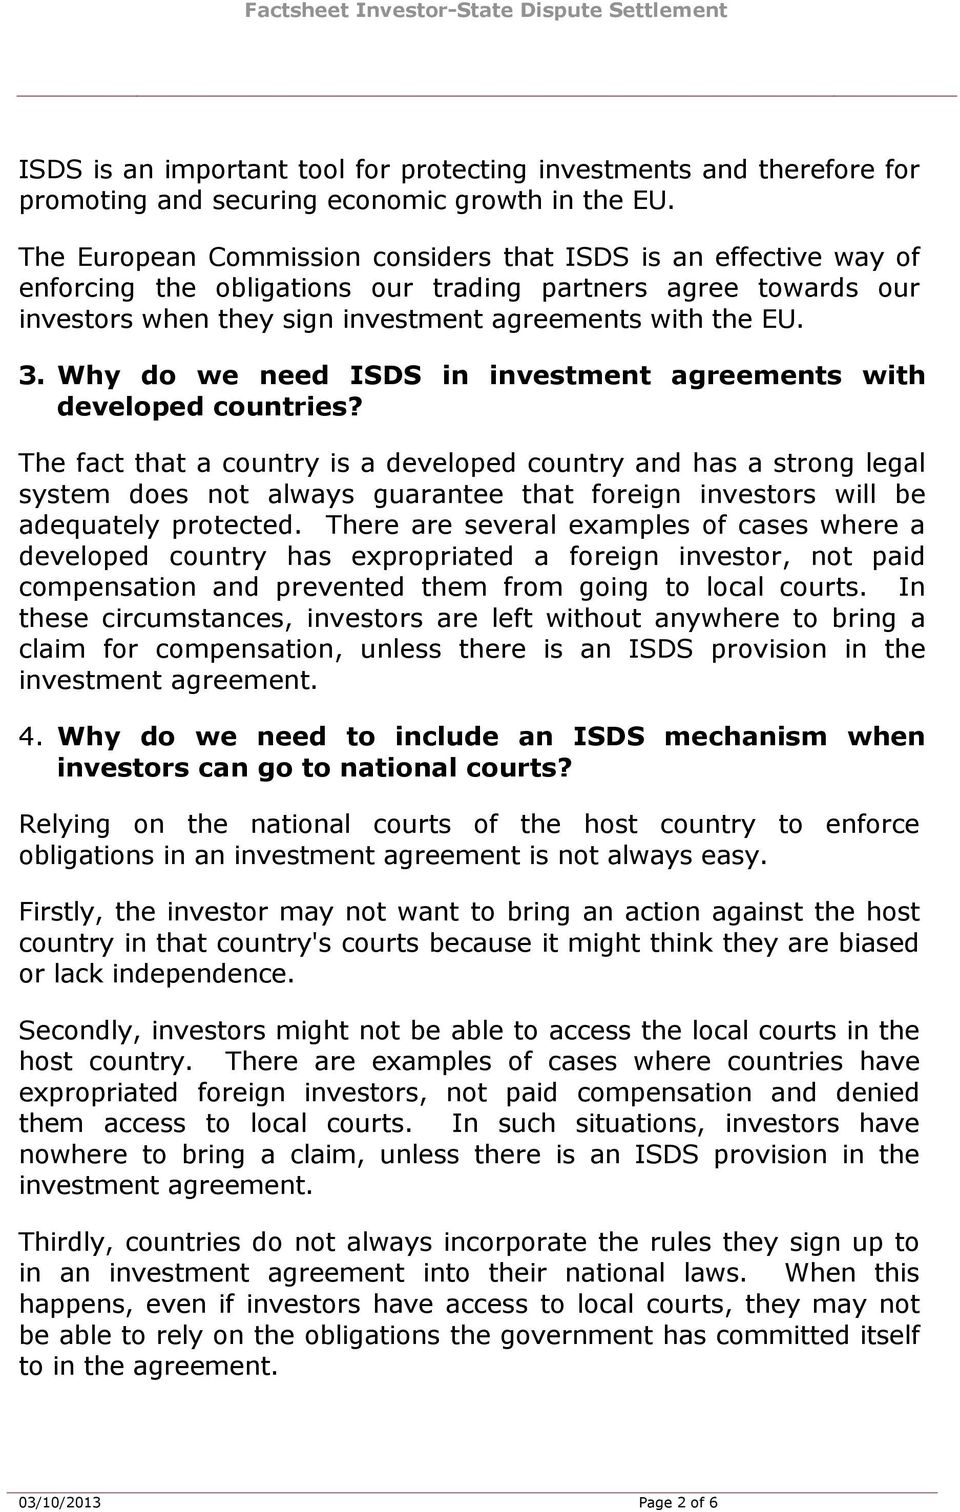 Why do we need ISDS in investment agreements with developed countries?